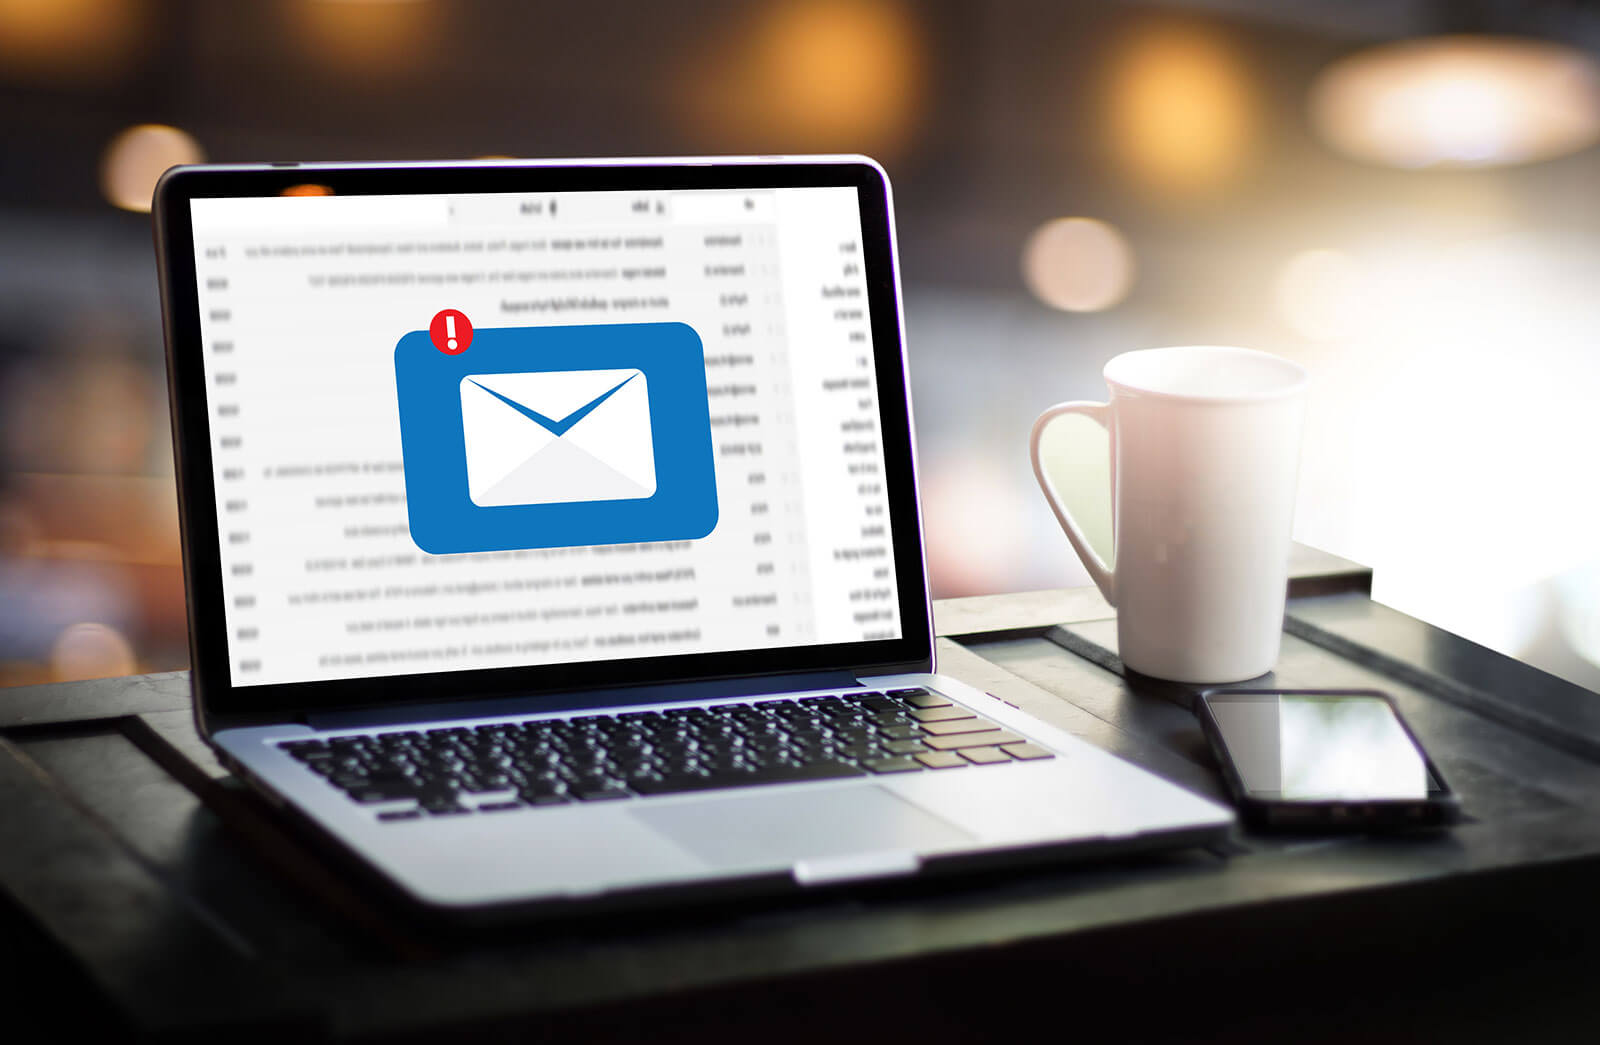 A Break Down of the Most Common Phishing Email Subject Lines